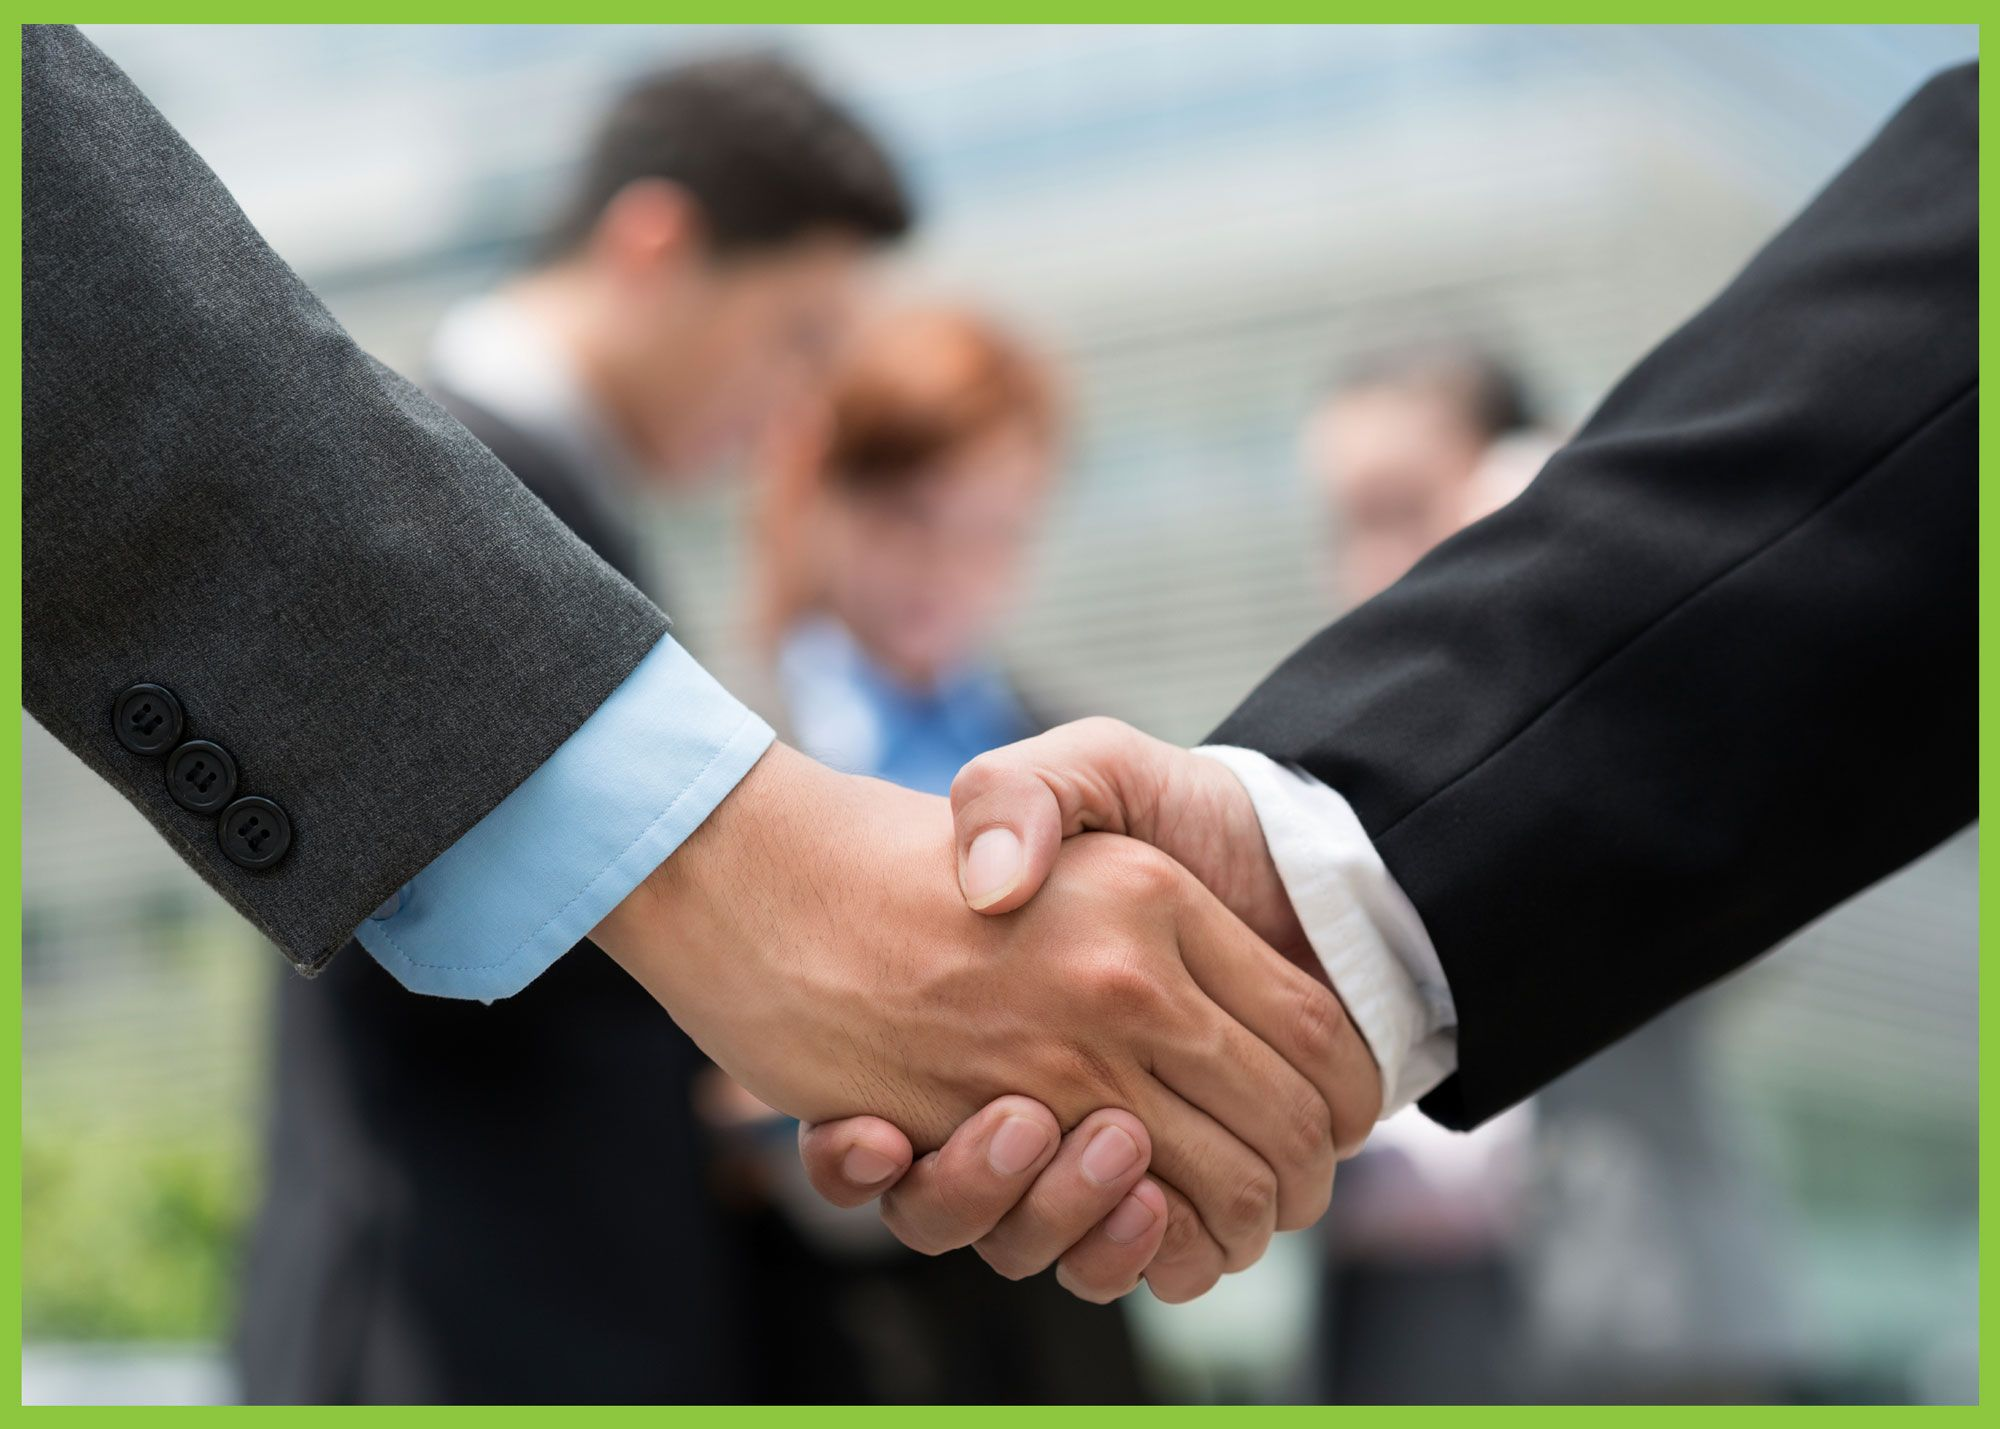 How important is relationship building in network marketing? More than just important.  Full article here: http://www.smartinternetlifestyle.com/network-marketing-tips-building-relationship/  #relationship #marketing #business